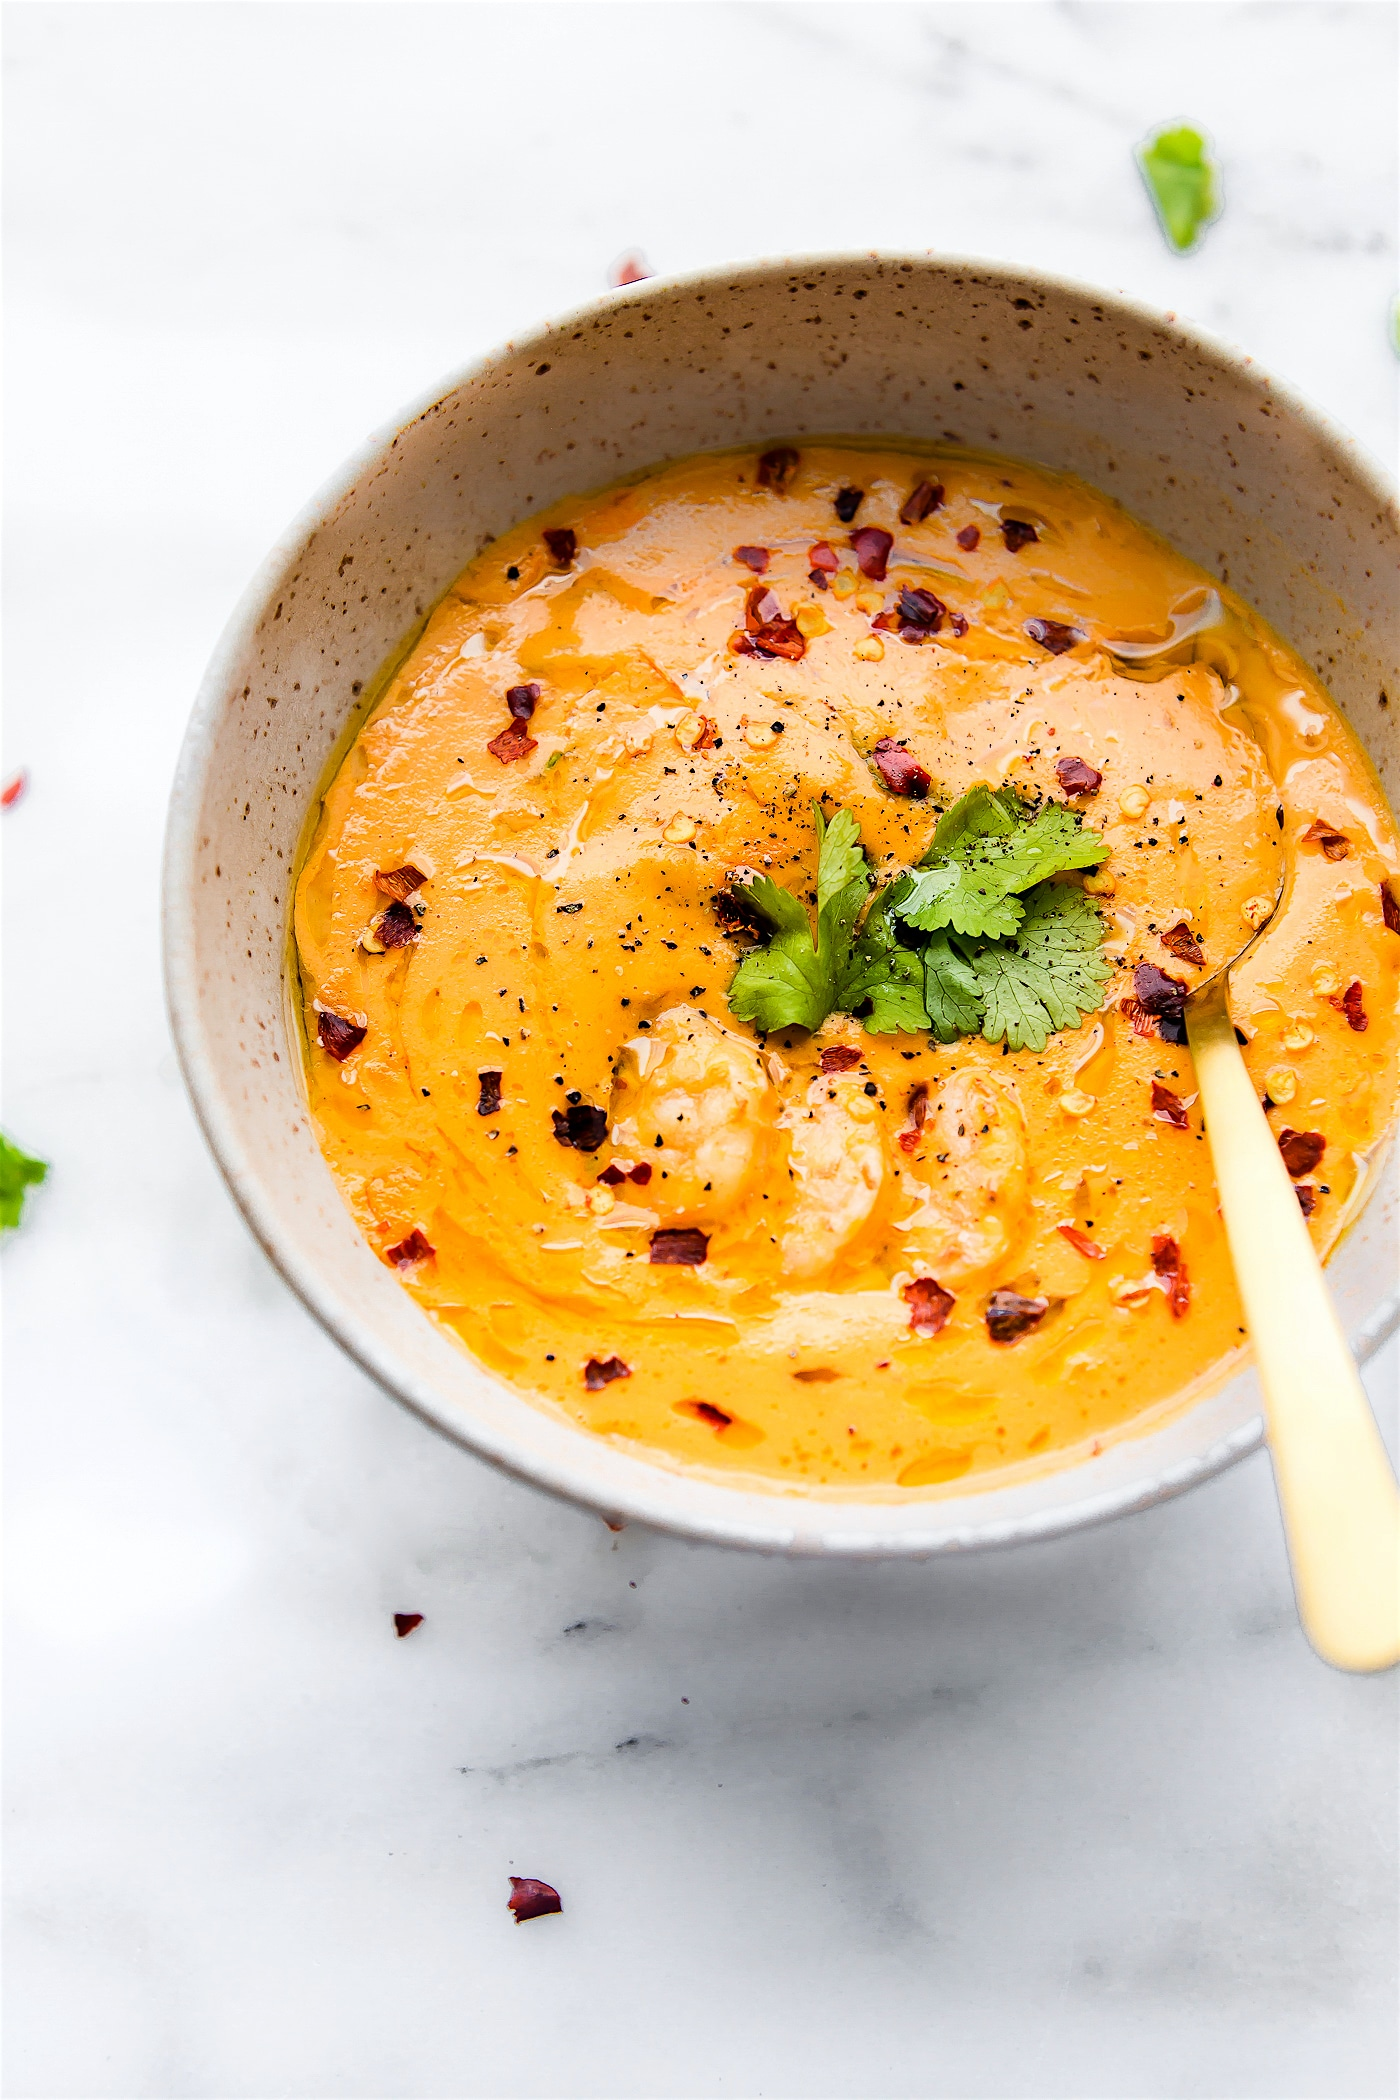 This creamy roasted red pepper bisque with Shrimp is dairy free, paleo, and totally delicious! A spicy bisque with healing immunity boosting nutrients. Perfect for cold weather or under the weather! Also a great way to get veggies into your meal. Nourish your family, feed your friends, or enjoy this robust roasted red pepper bisque recipe all to yourself. Whole 30 compliant. !